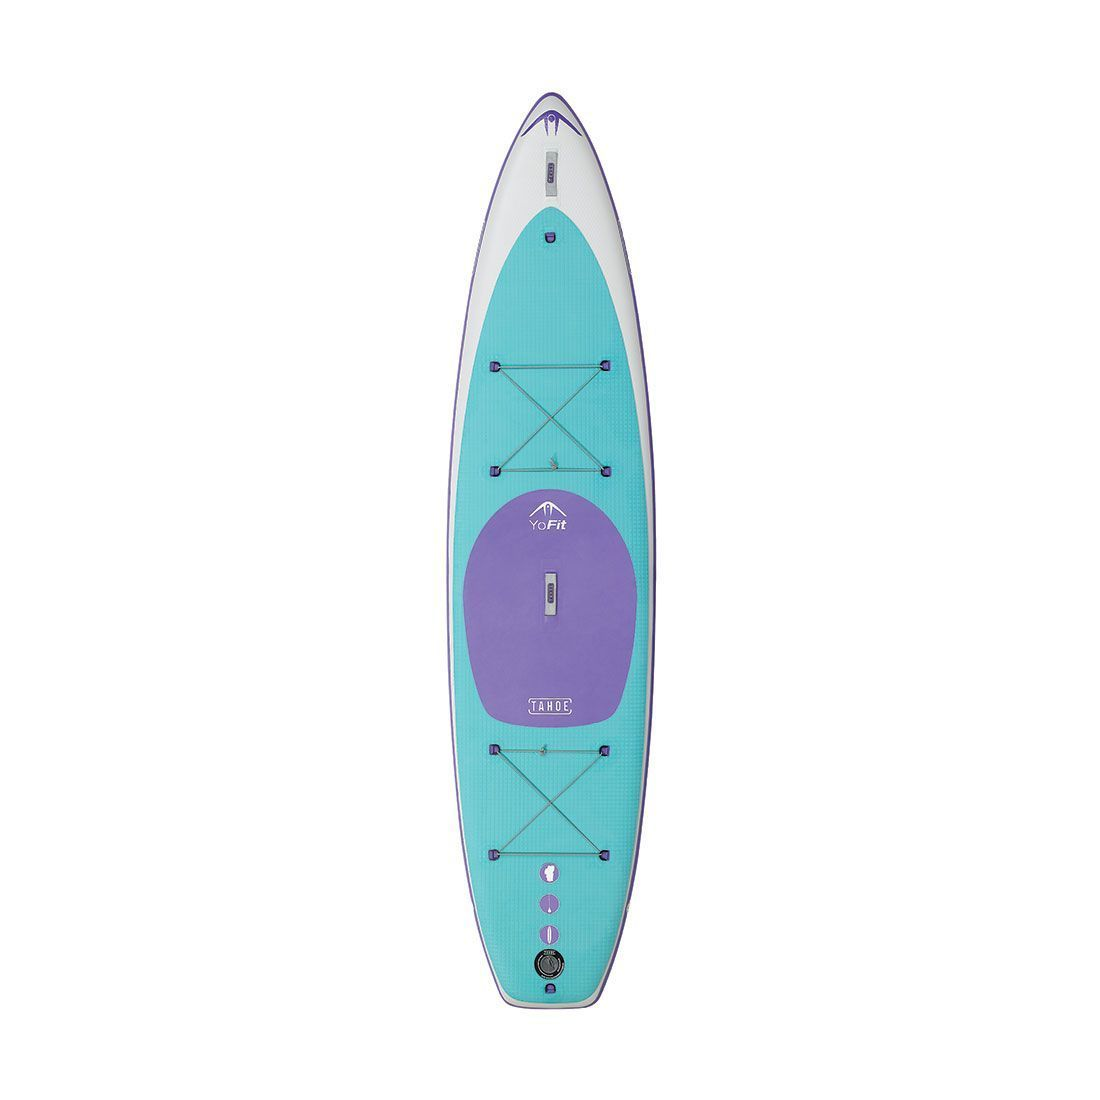 Tahoe iSUP YoFit - Inflatable Yoga Standup Paddle Board, BOGO DEAL Paddle Boards 4theoutdoors Canada SUP outdoors